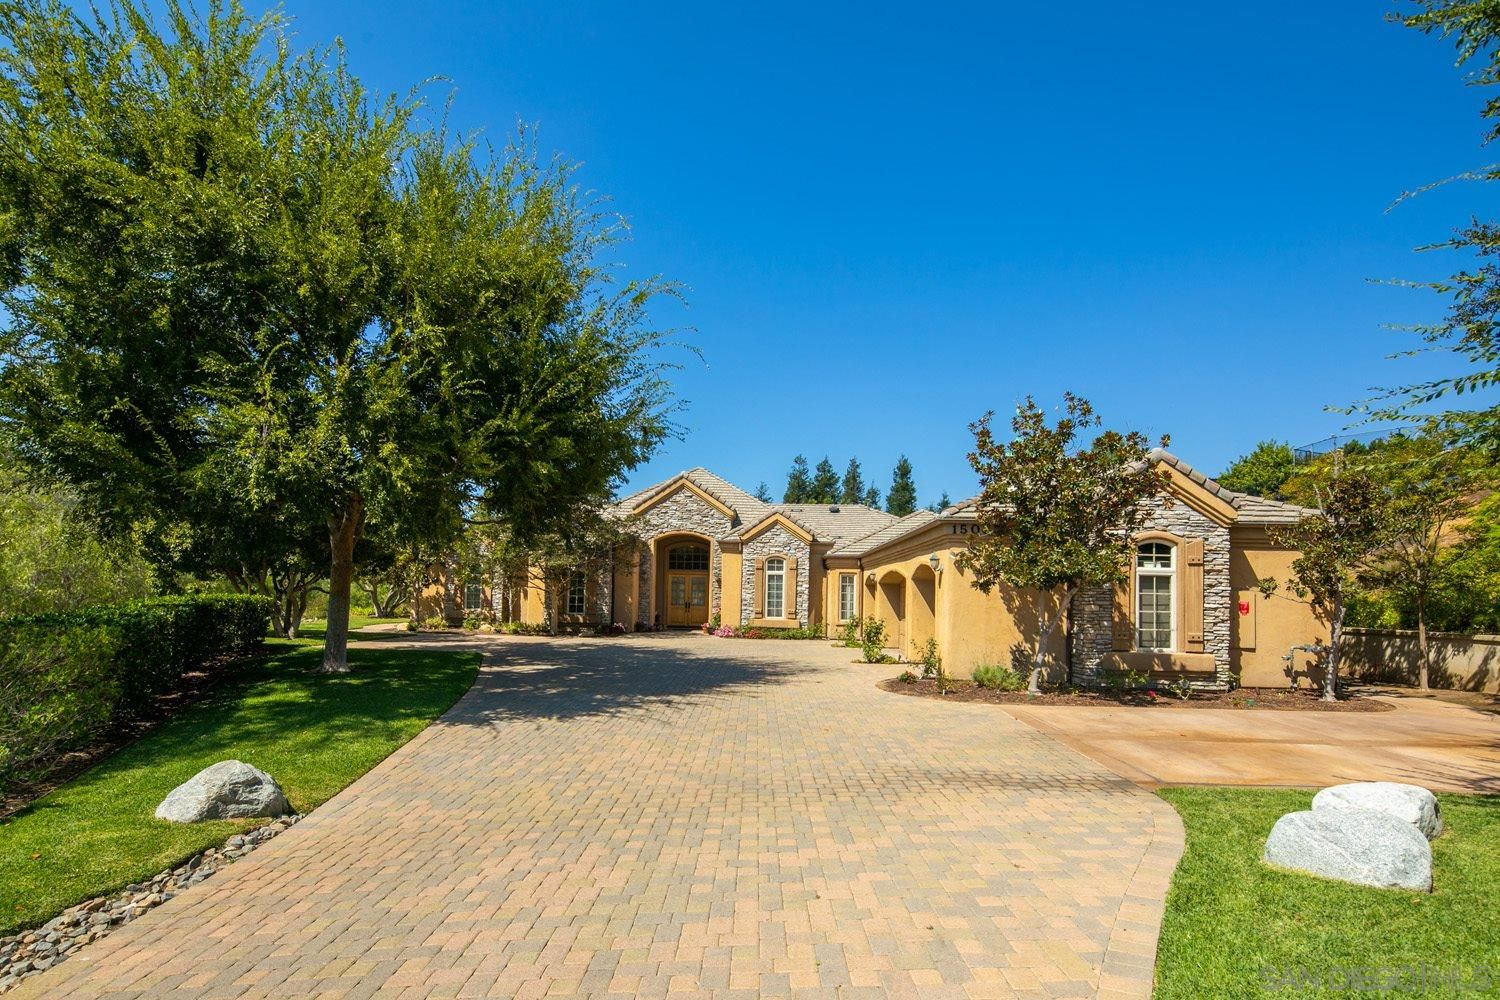 Main Photo: POWAY House for sale : 5 bedrooms : 15085 Saddlebrook Lane